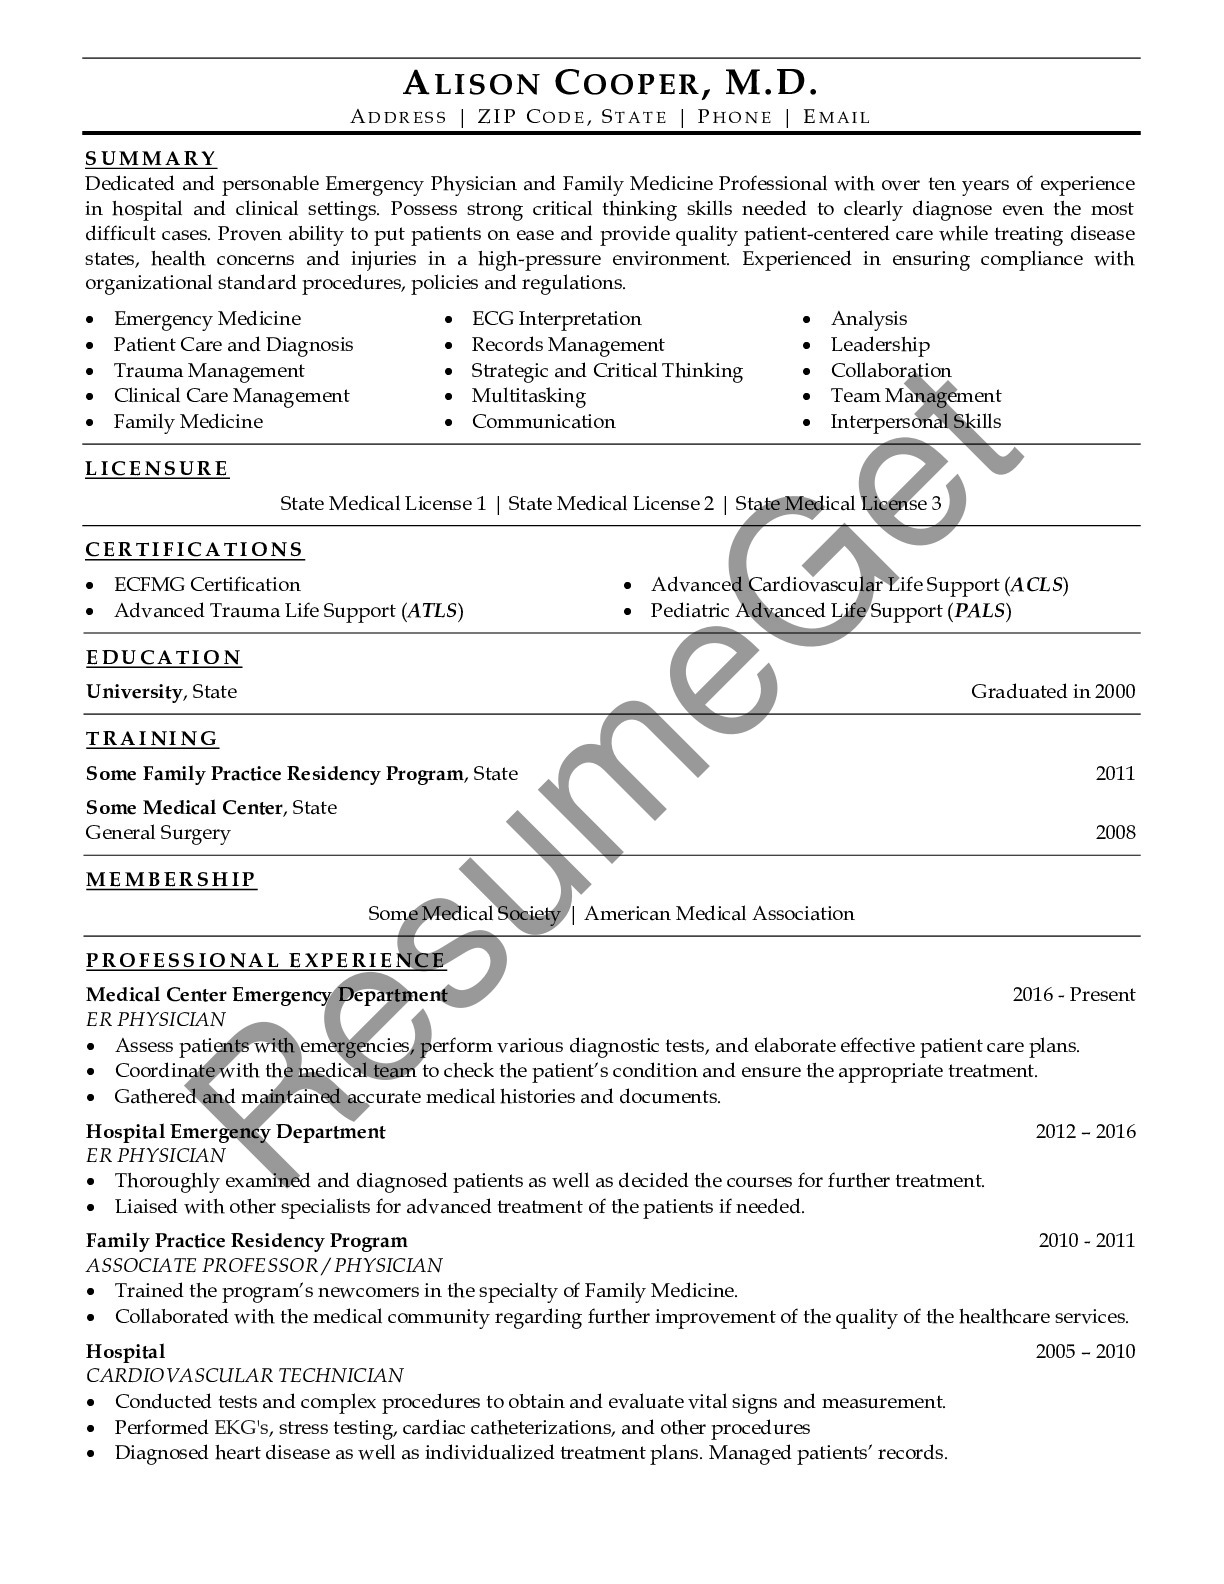 CV Example for Doctor